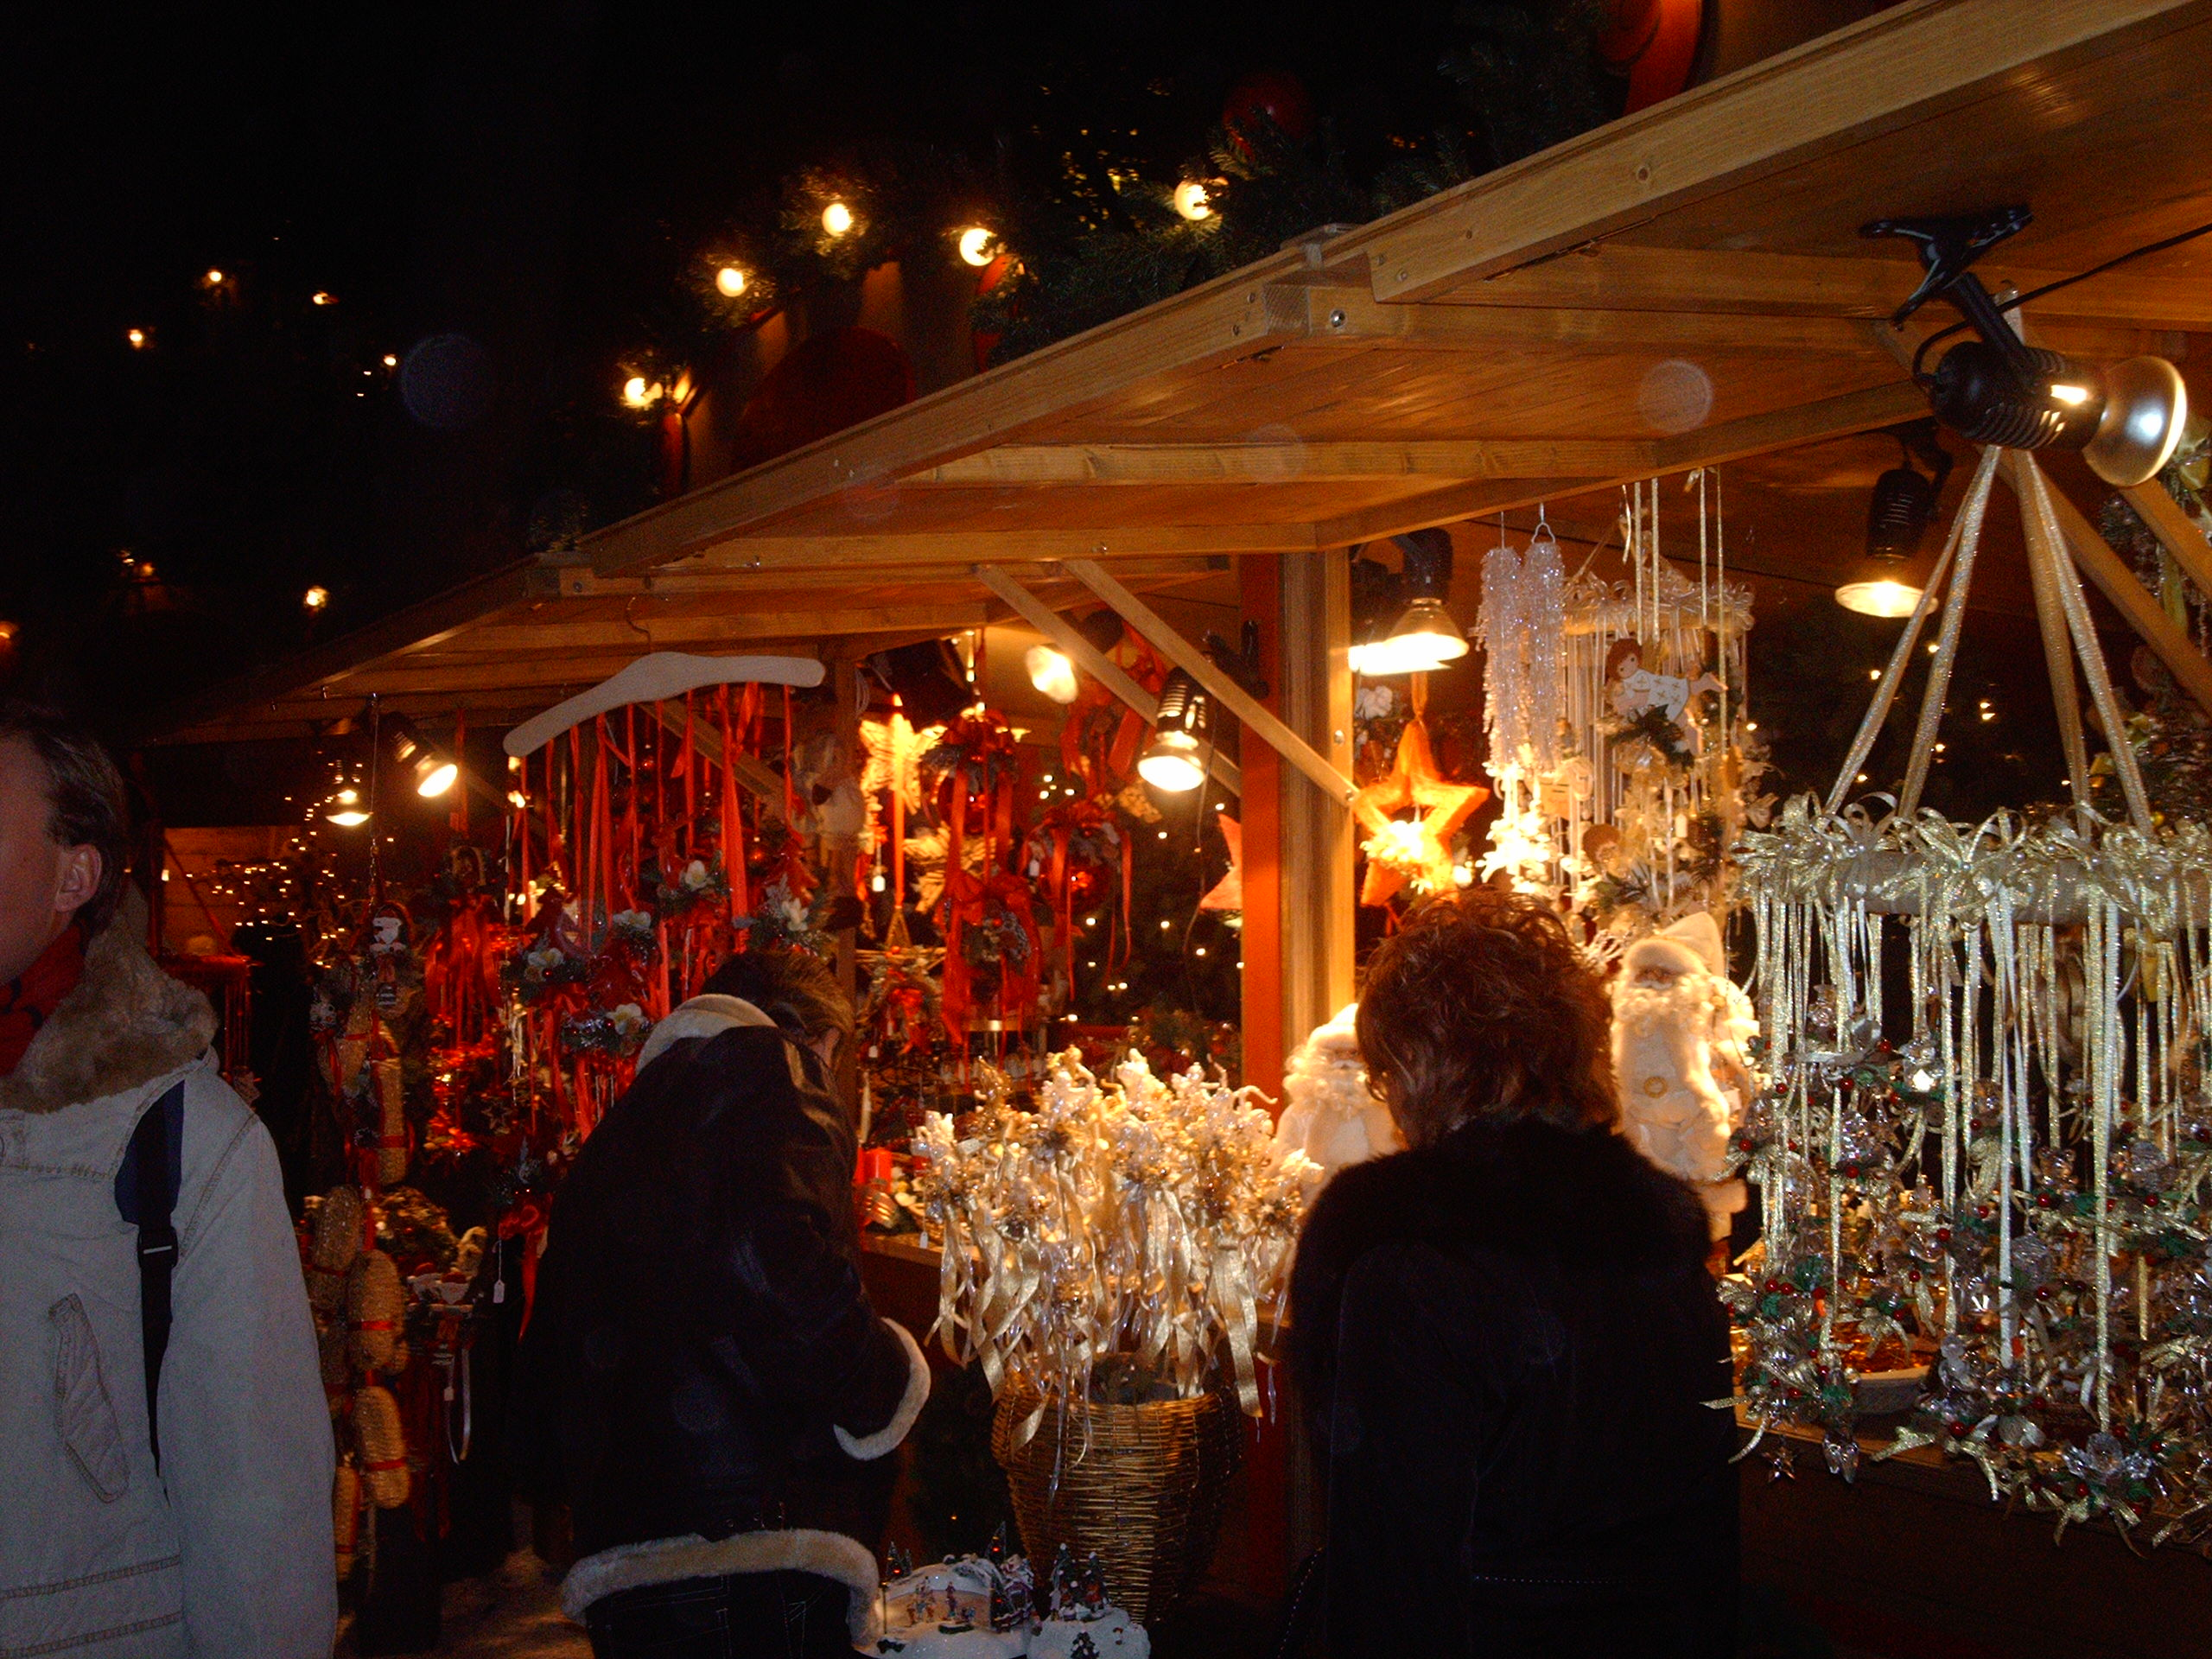 street market image credit - How Does Italy Celebrate Christmas